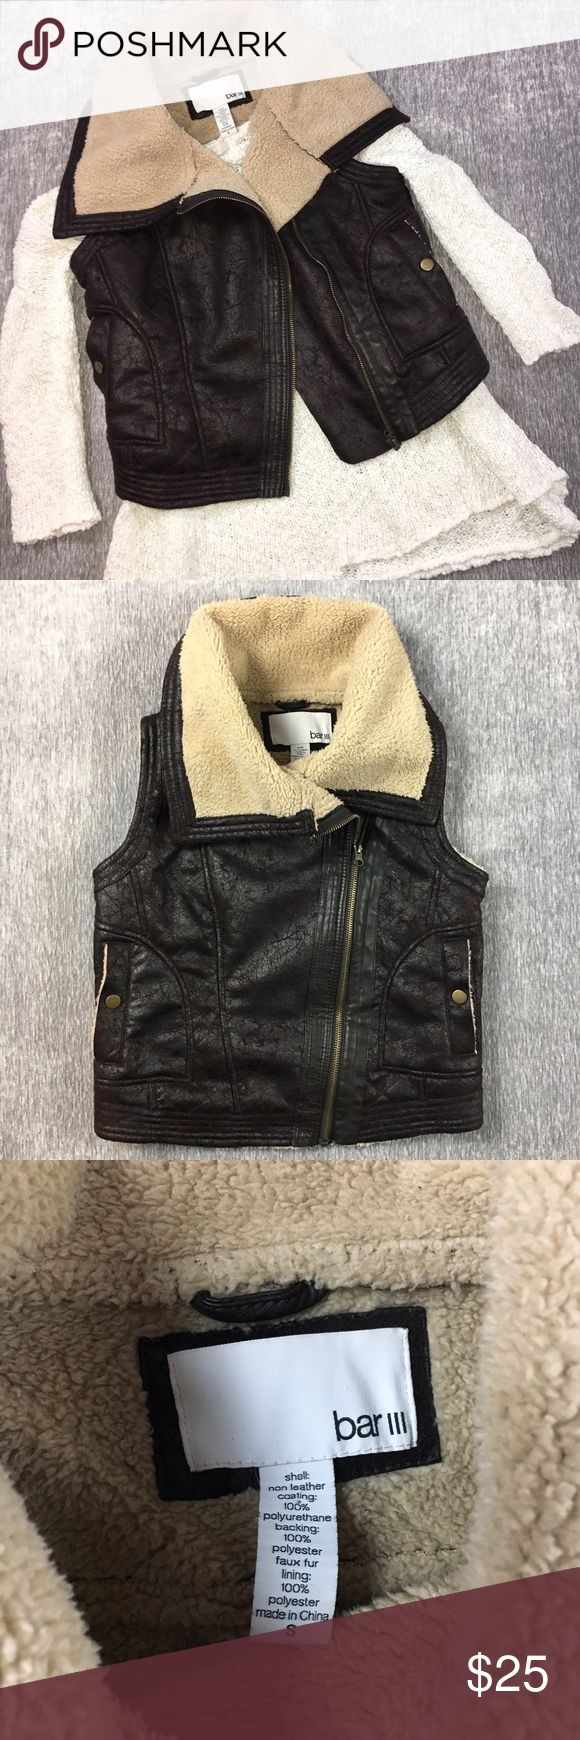 Bar III Fur Collar Bomber Motorcycle Leather Vest Bar III Moto Brown Distressed faux Leather Best. Has faux fur lining and collar. Seams and buttons on pockets to depict a bomber jacket style. Zips up asymmetrically and can be worn zipped or open. Super cute and great for layering. Excellent condition! Bar III Jackets & Coats Vests